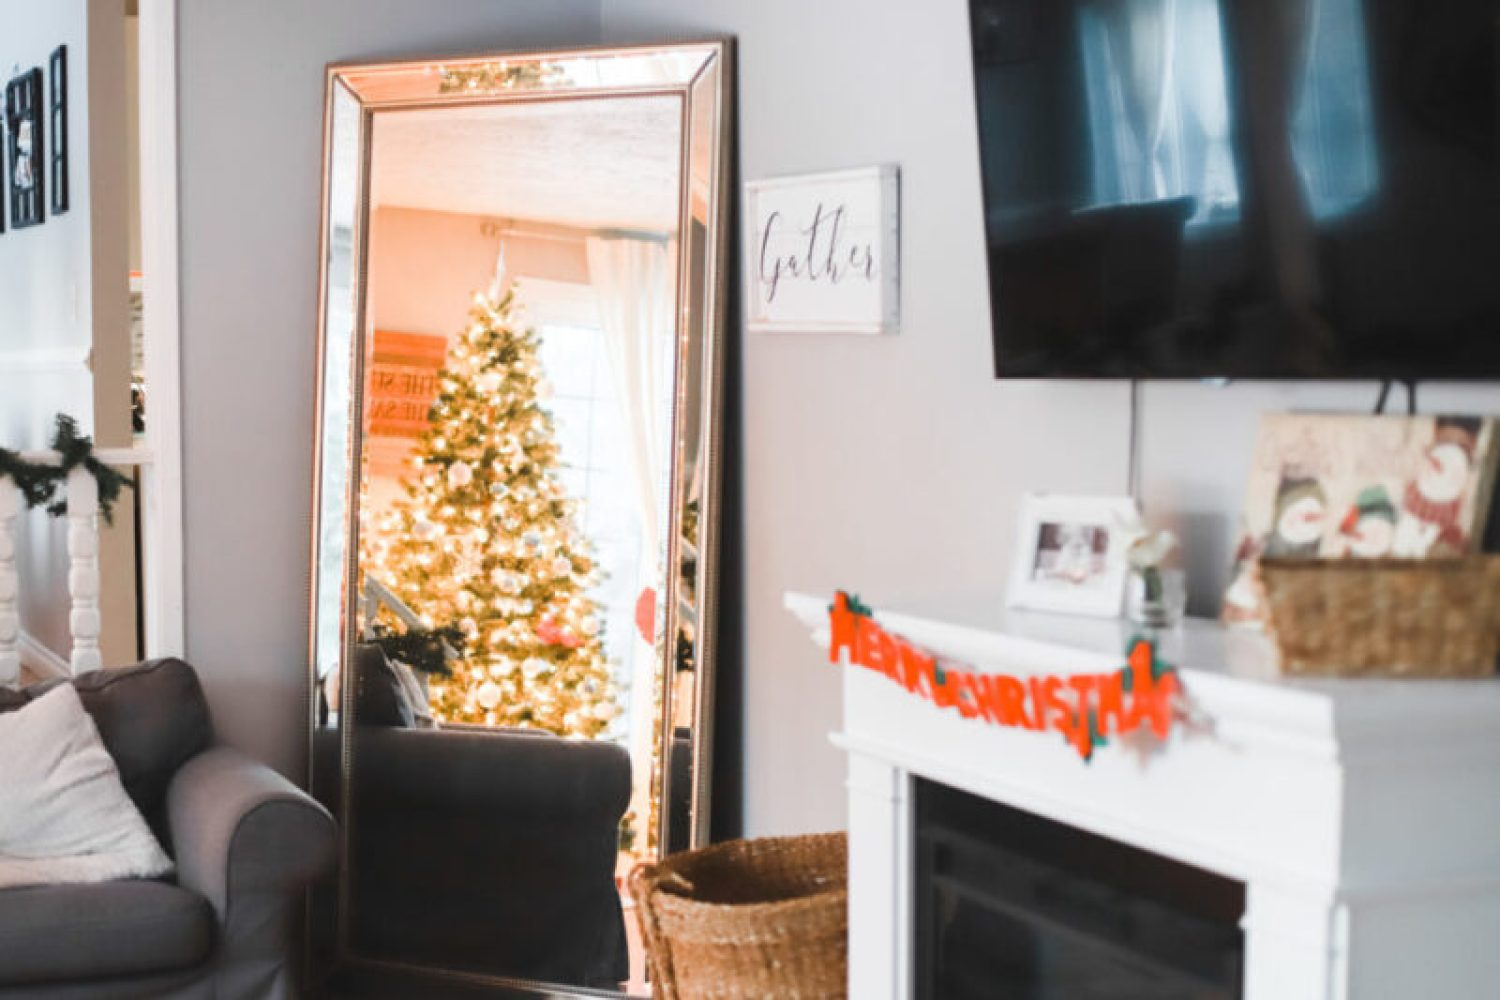 This is our living room home tour with minimal, cozy, and affordable Christmas decorations for the holiday season. I'll be linking everything from our rug, furniture, and accents, to our Christmas tree and electric fireplace.Home Design | Home Decor | Christmas Decor | Christmas Decorations | Deck The Halls | Holiday Decorating | Xmas Tree | Ikea Ektorp Sofa | Nordvalla Grey | Hemnes Sofa Table | TV on Top of Fireplace | Mantel |